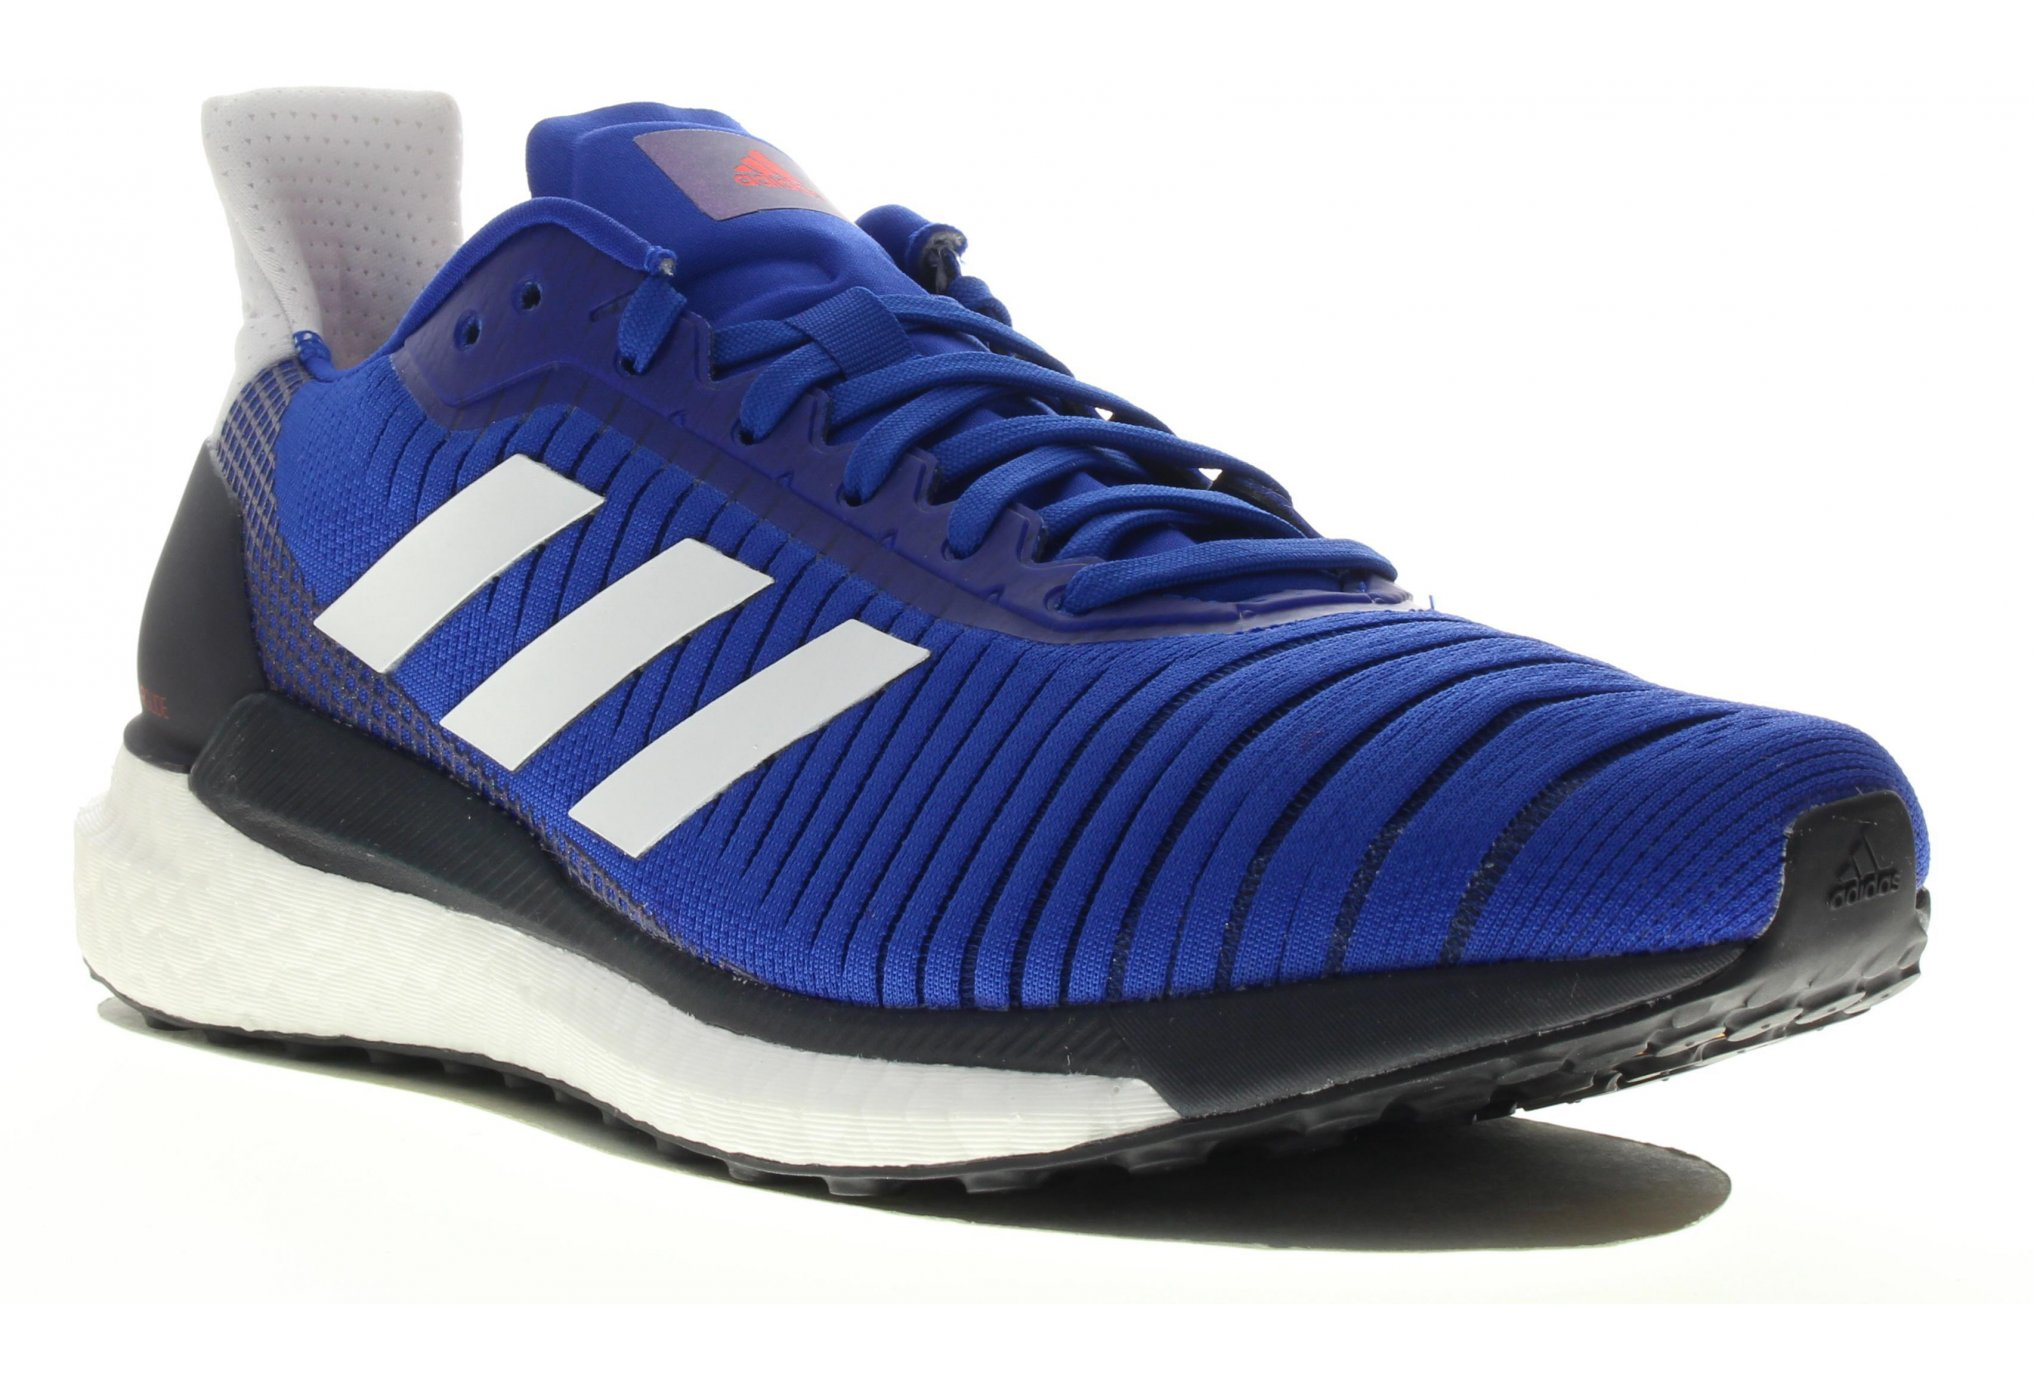 adidas Solar Glide 19 M Chaussures homme